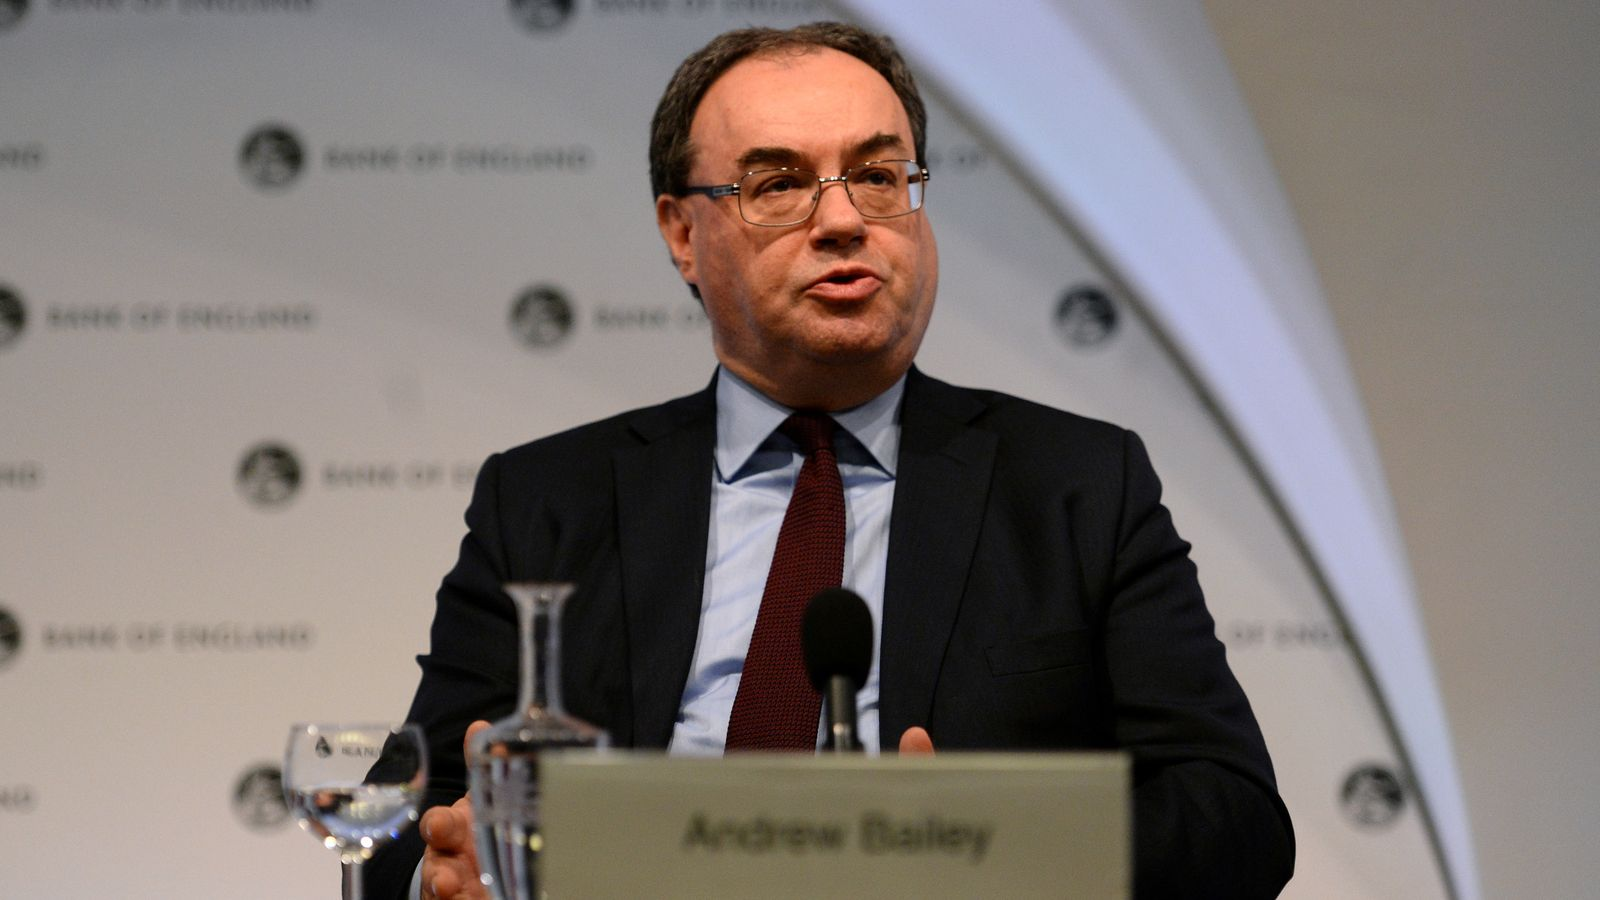 BoE governor Bailey blows hole in pension superfunds regime | Business News